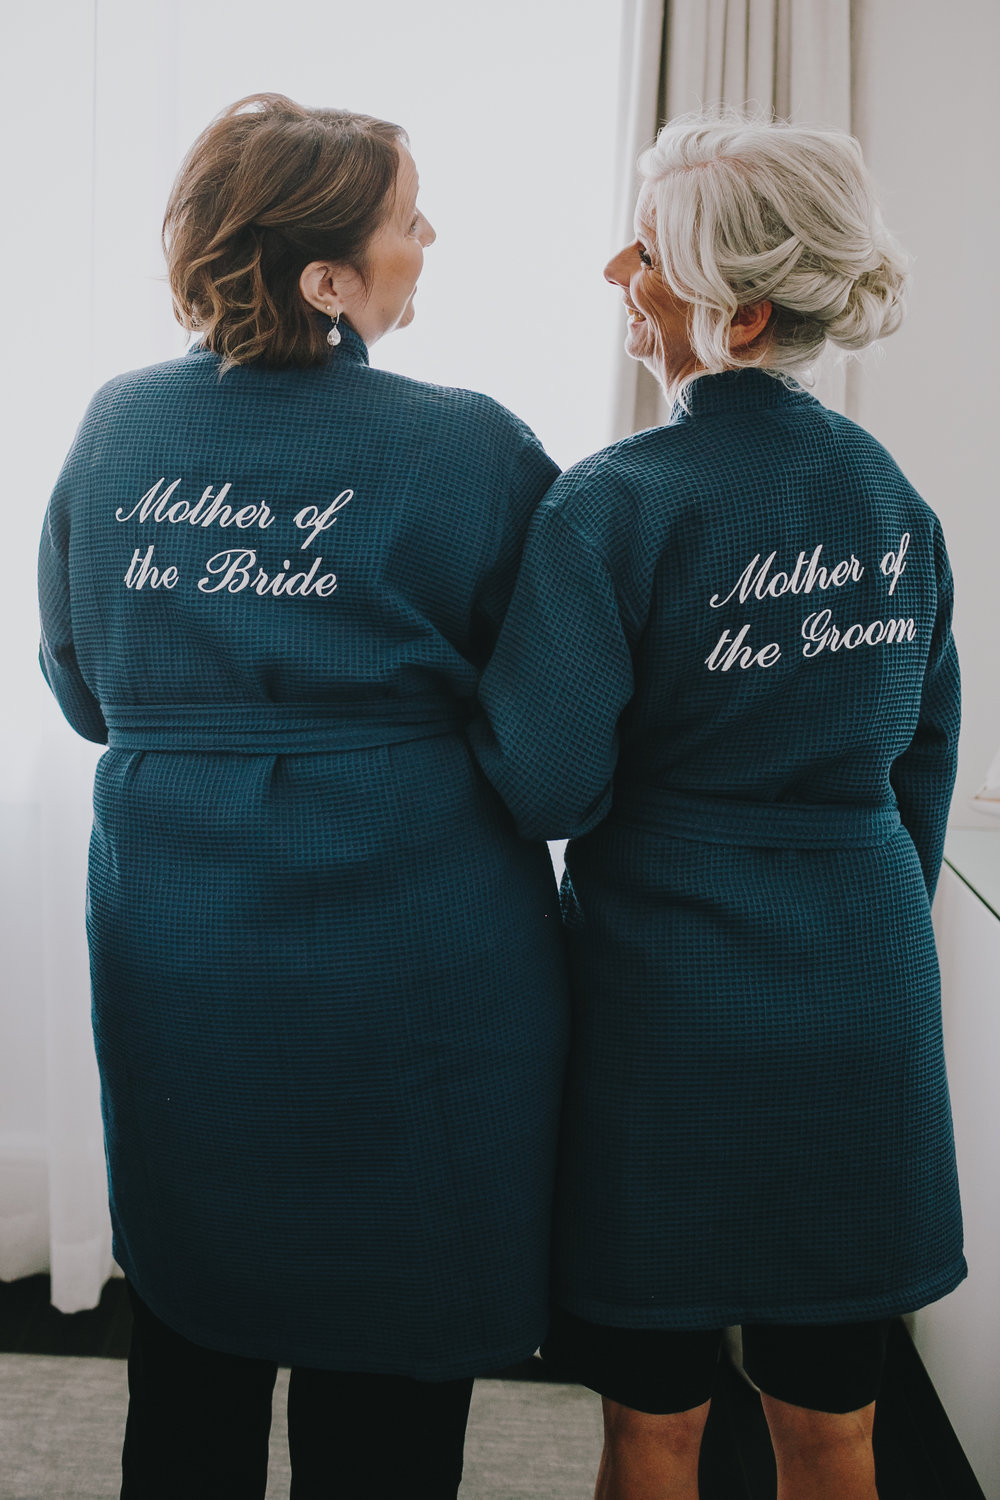 "Such a special moment captured between the wedding ""moms."" What a special way to use matching robes!"